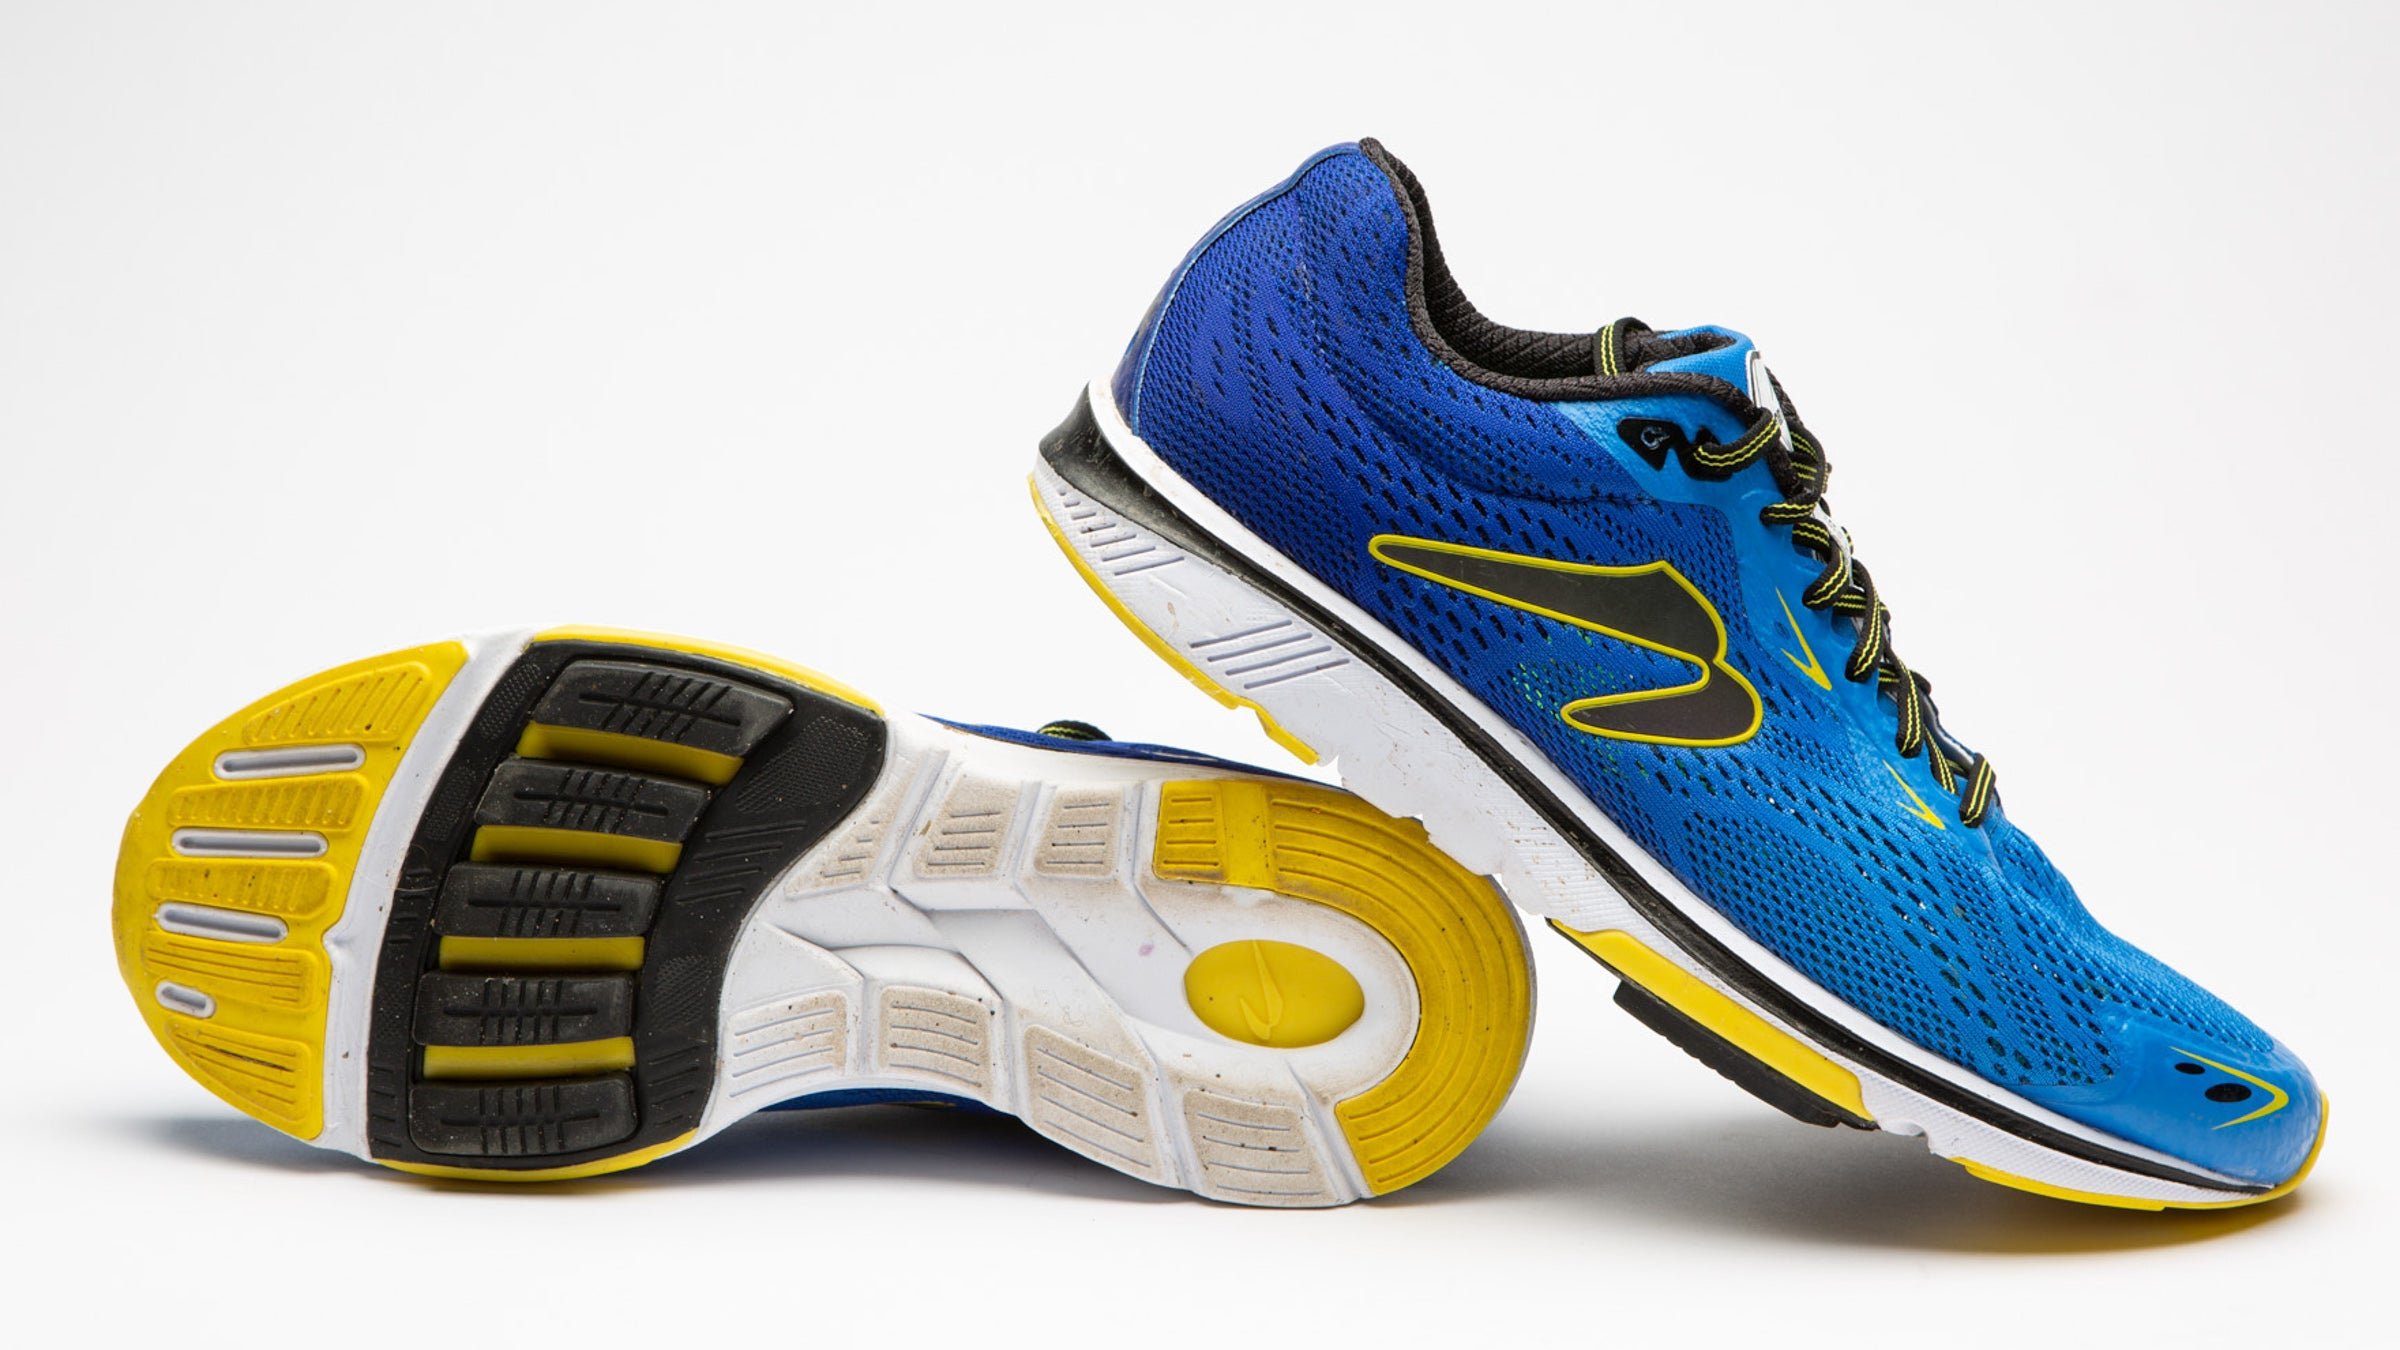 5 New Bouncy Road Running Shoes